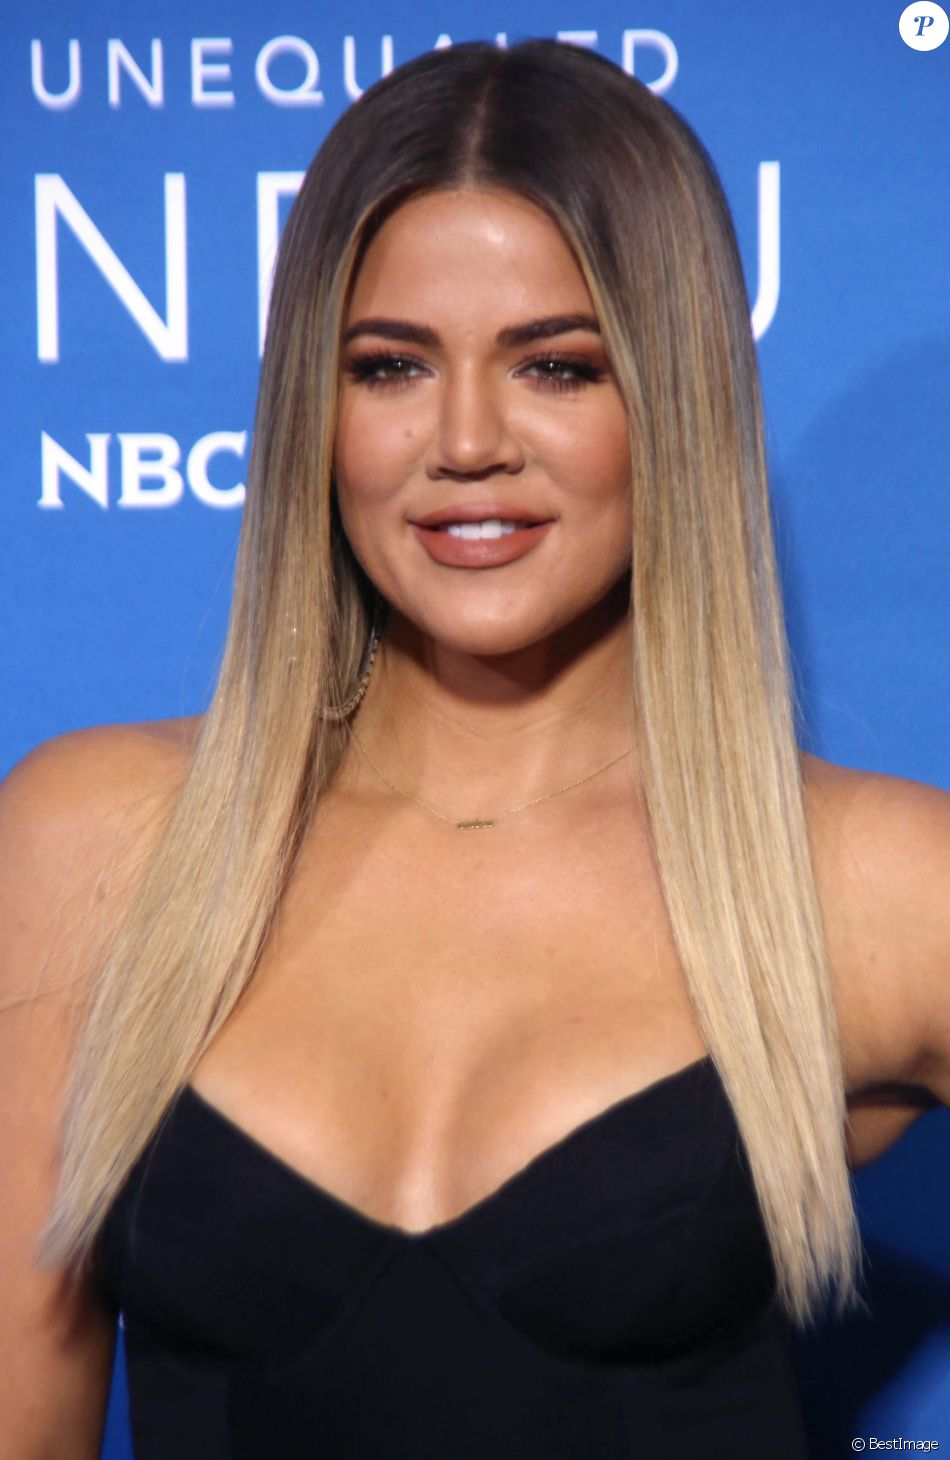 Khloé Kardashian à la soirée NBC Universal 2017 à New York City, New York,